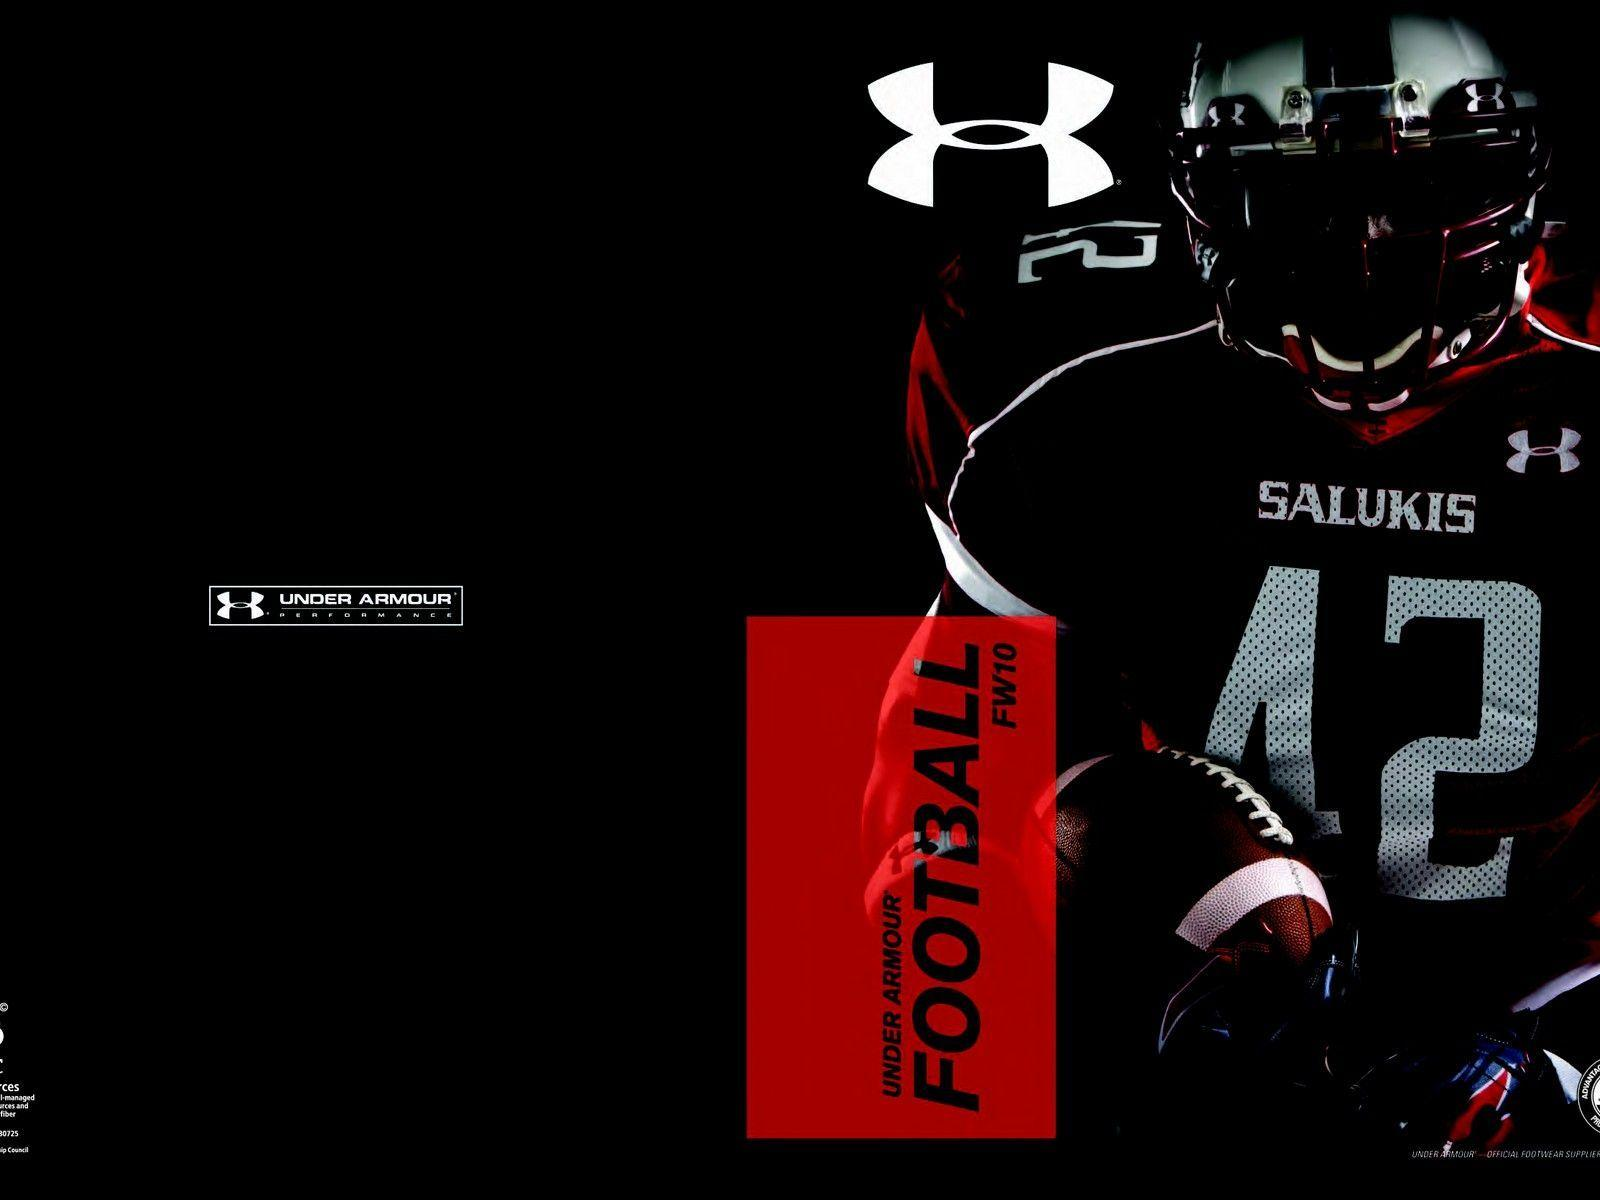 under armour wallpapers for facebook - photo #14